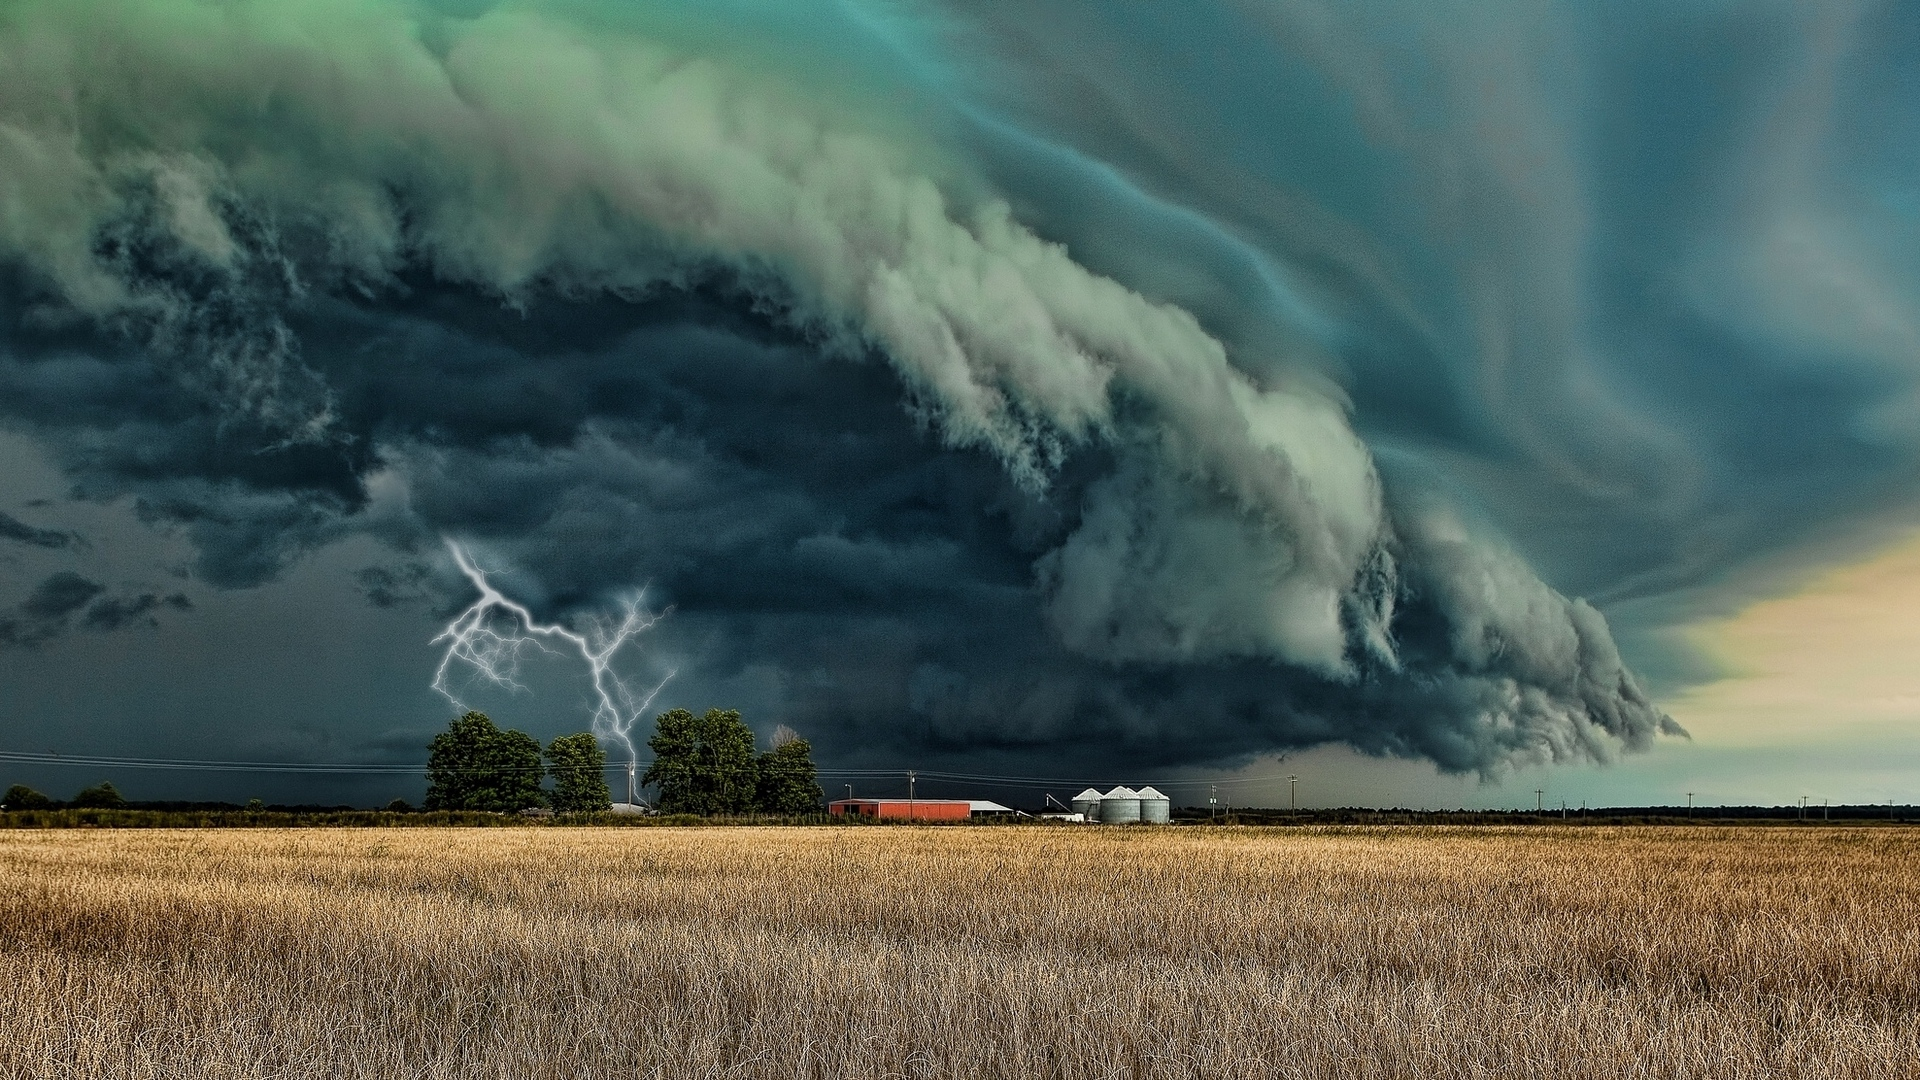 156 Storm HD Wallpapers | Backgrounds - Wallpaper Abyss - Page 2